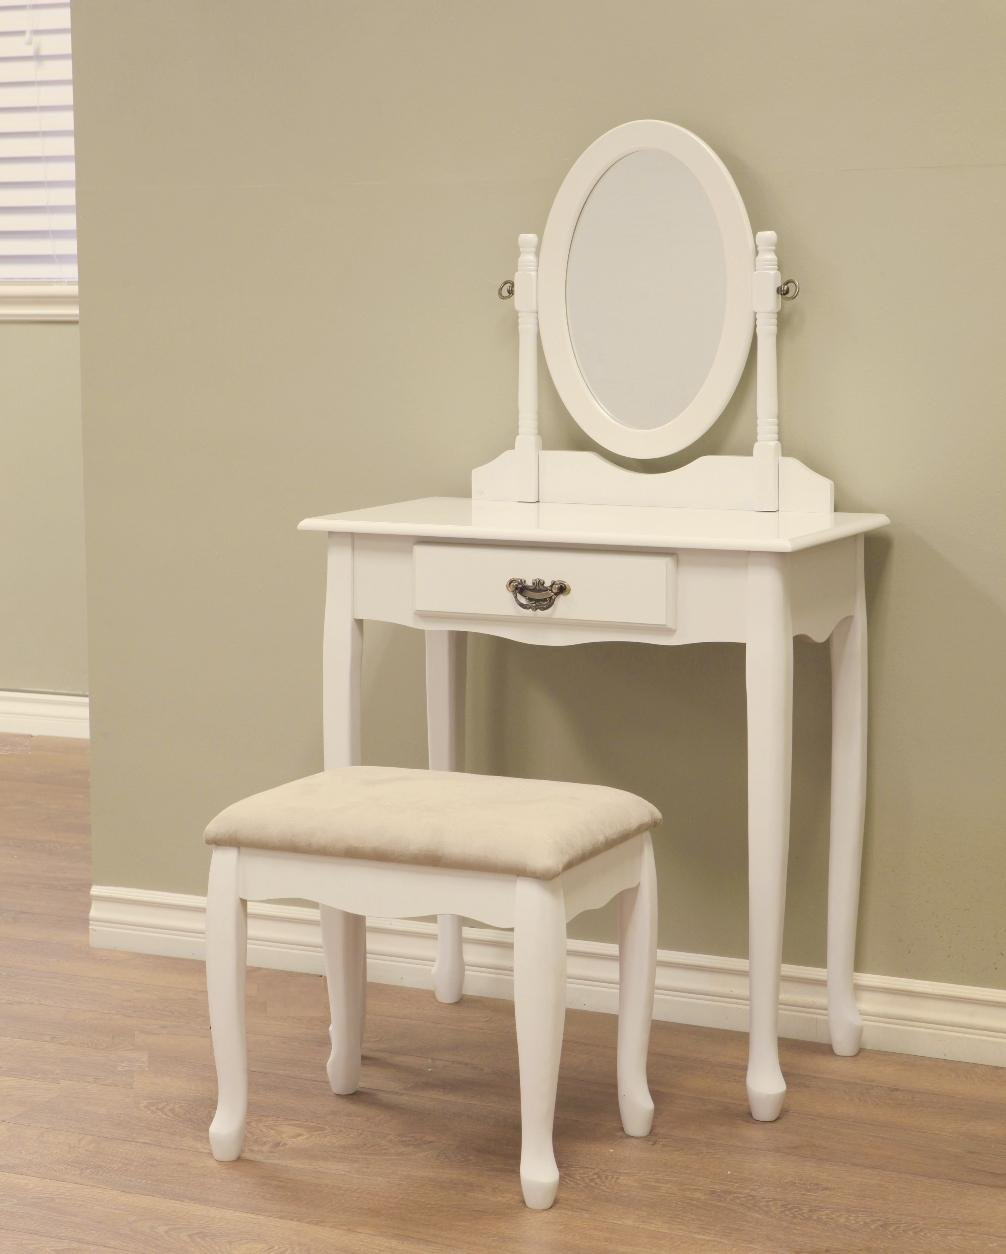 vanity dressing table stool set bedroom furniture white storage drawer mirror ebay. Black Bedroom Furniture Sets. Home Design Ideas